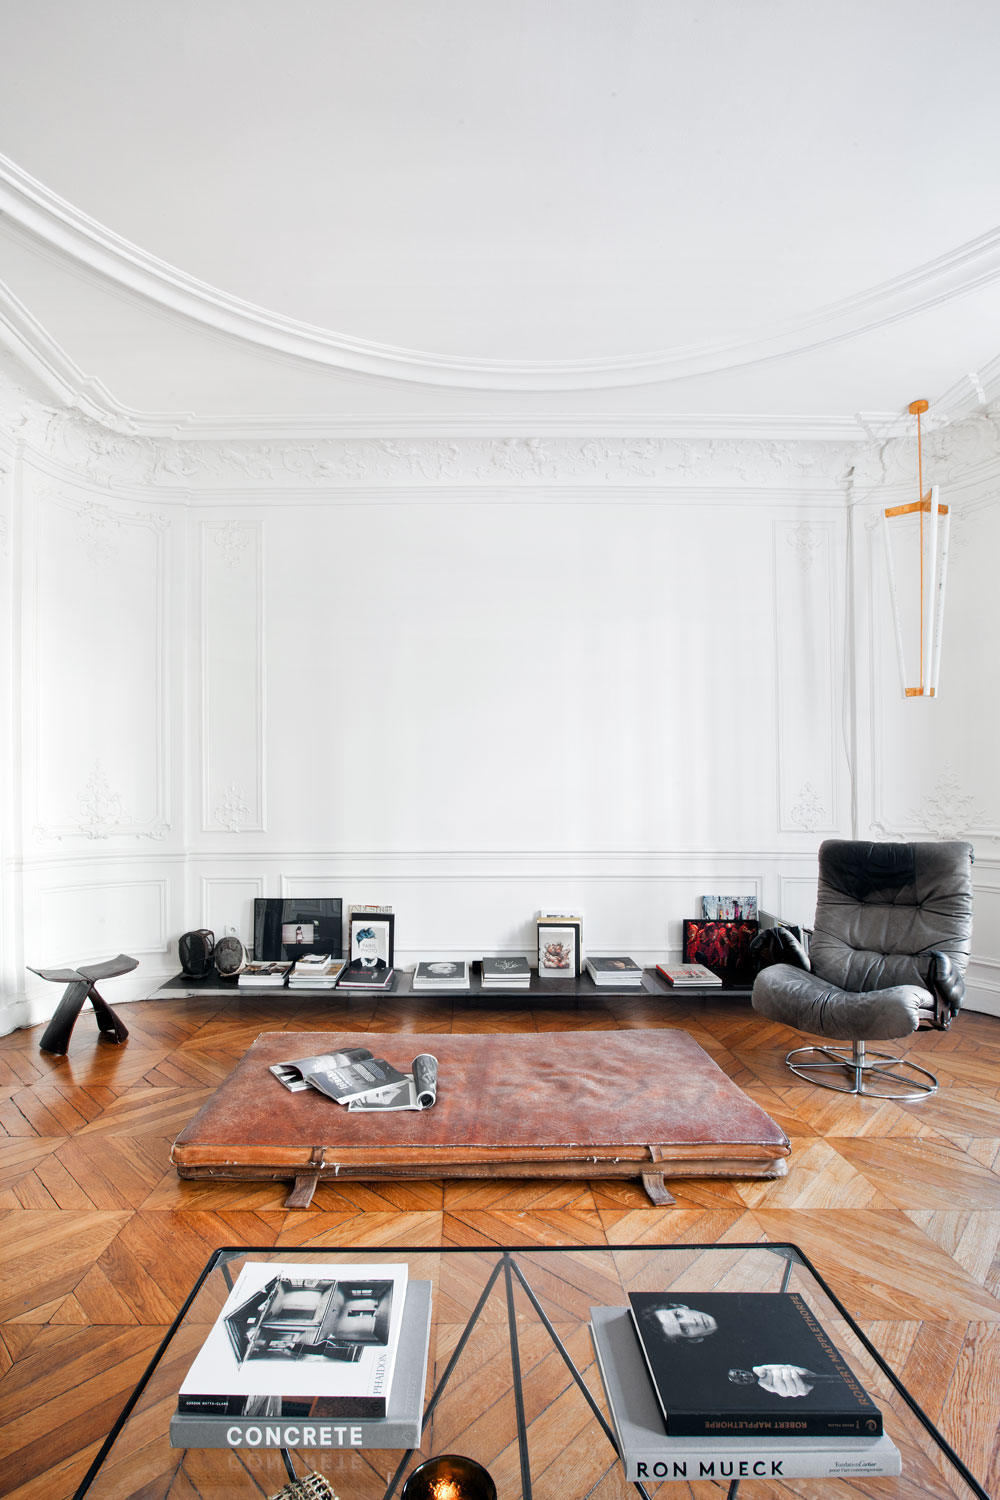 1.sunday-sanctuary-pared-back-19th-century-apartment-paris-parisian-home-interiors-oracle-fox-2